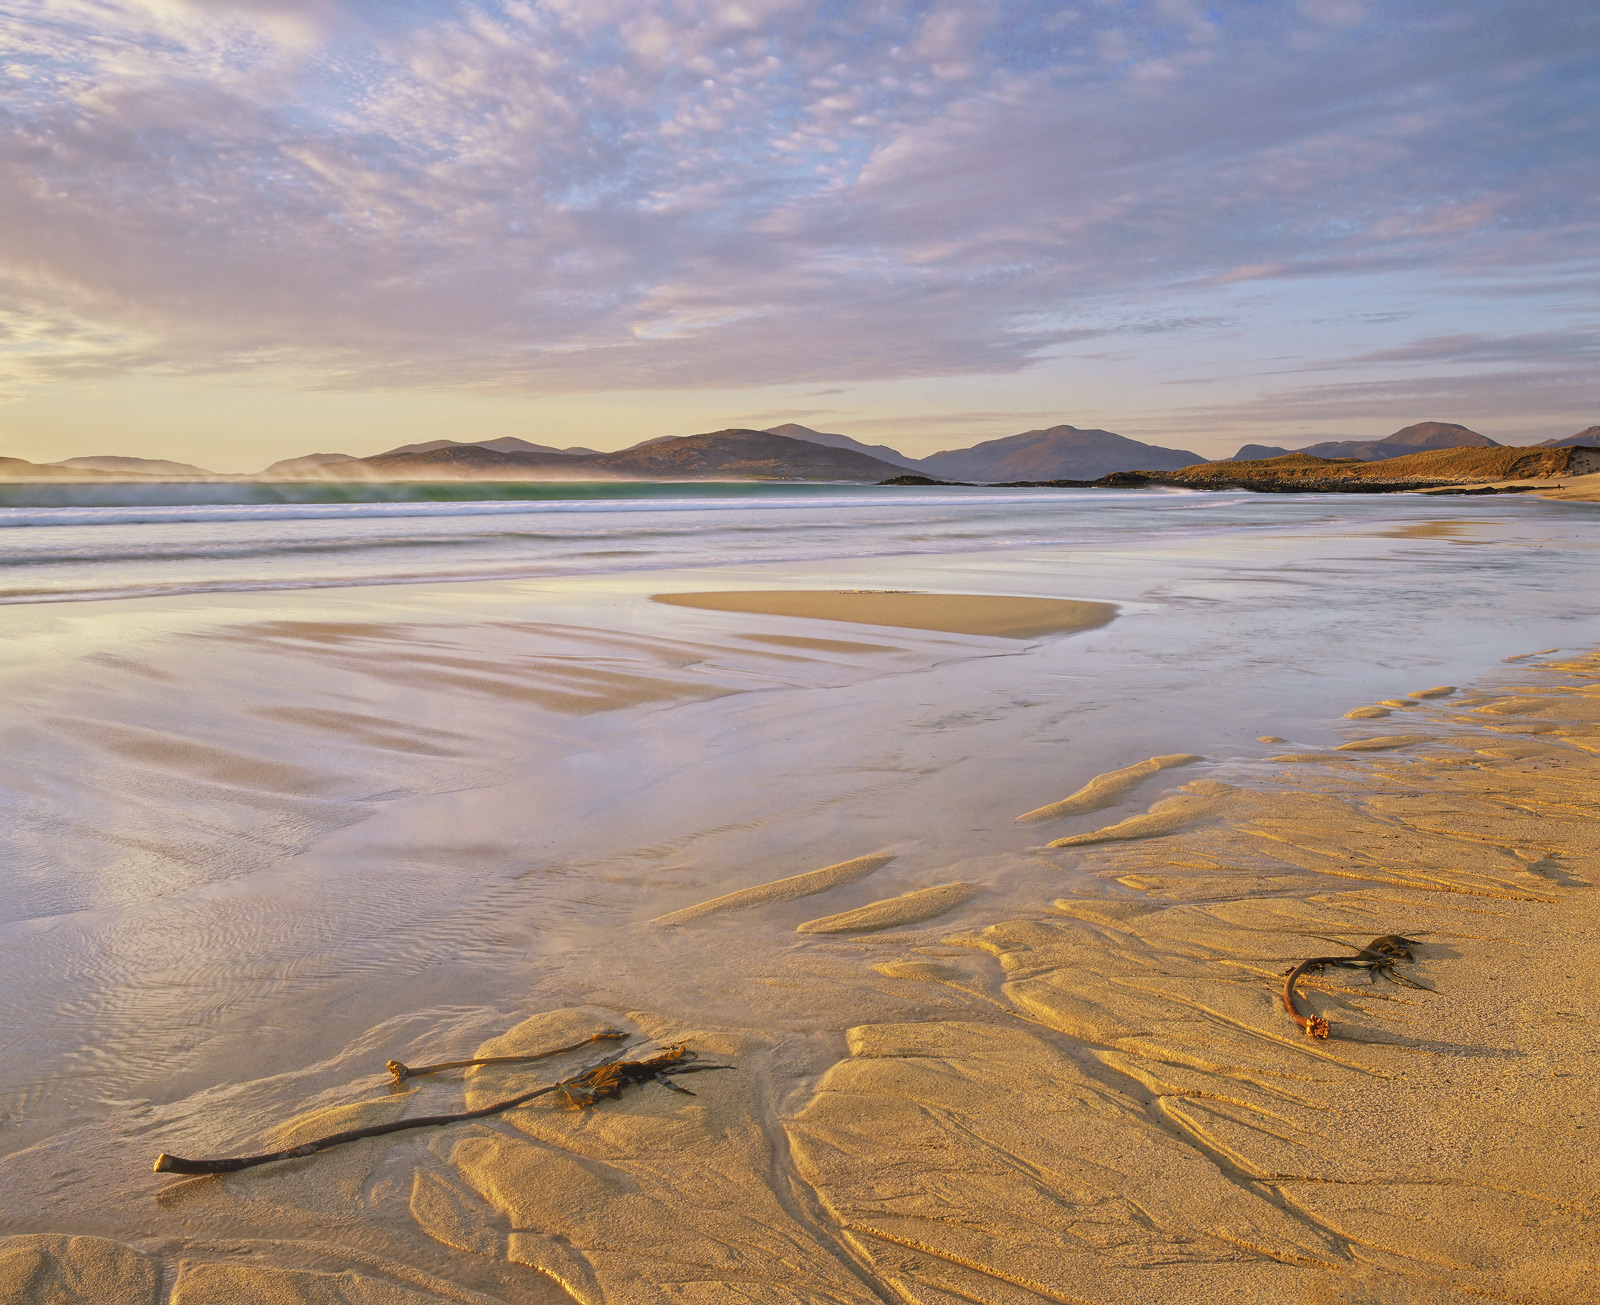 Traigh Mhor Buttersotch, Traigh Mhor, Harris, Scotland, low tide, beach, sand, patterns, Spring, light, sea, breakers, s, photo